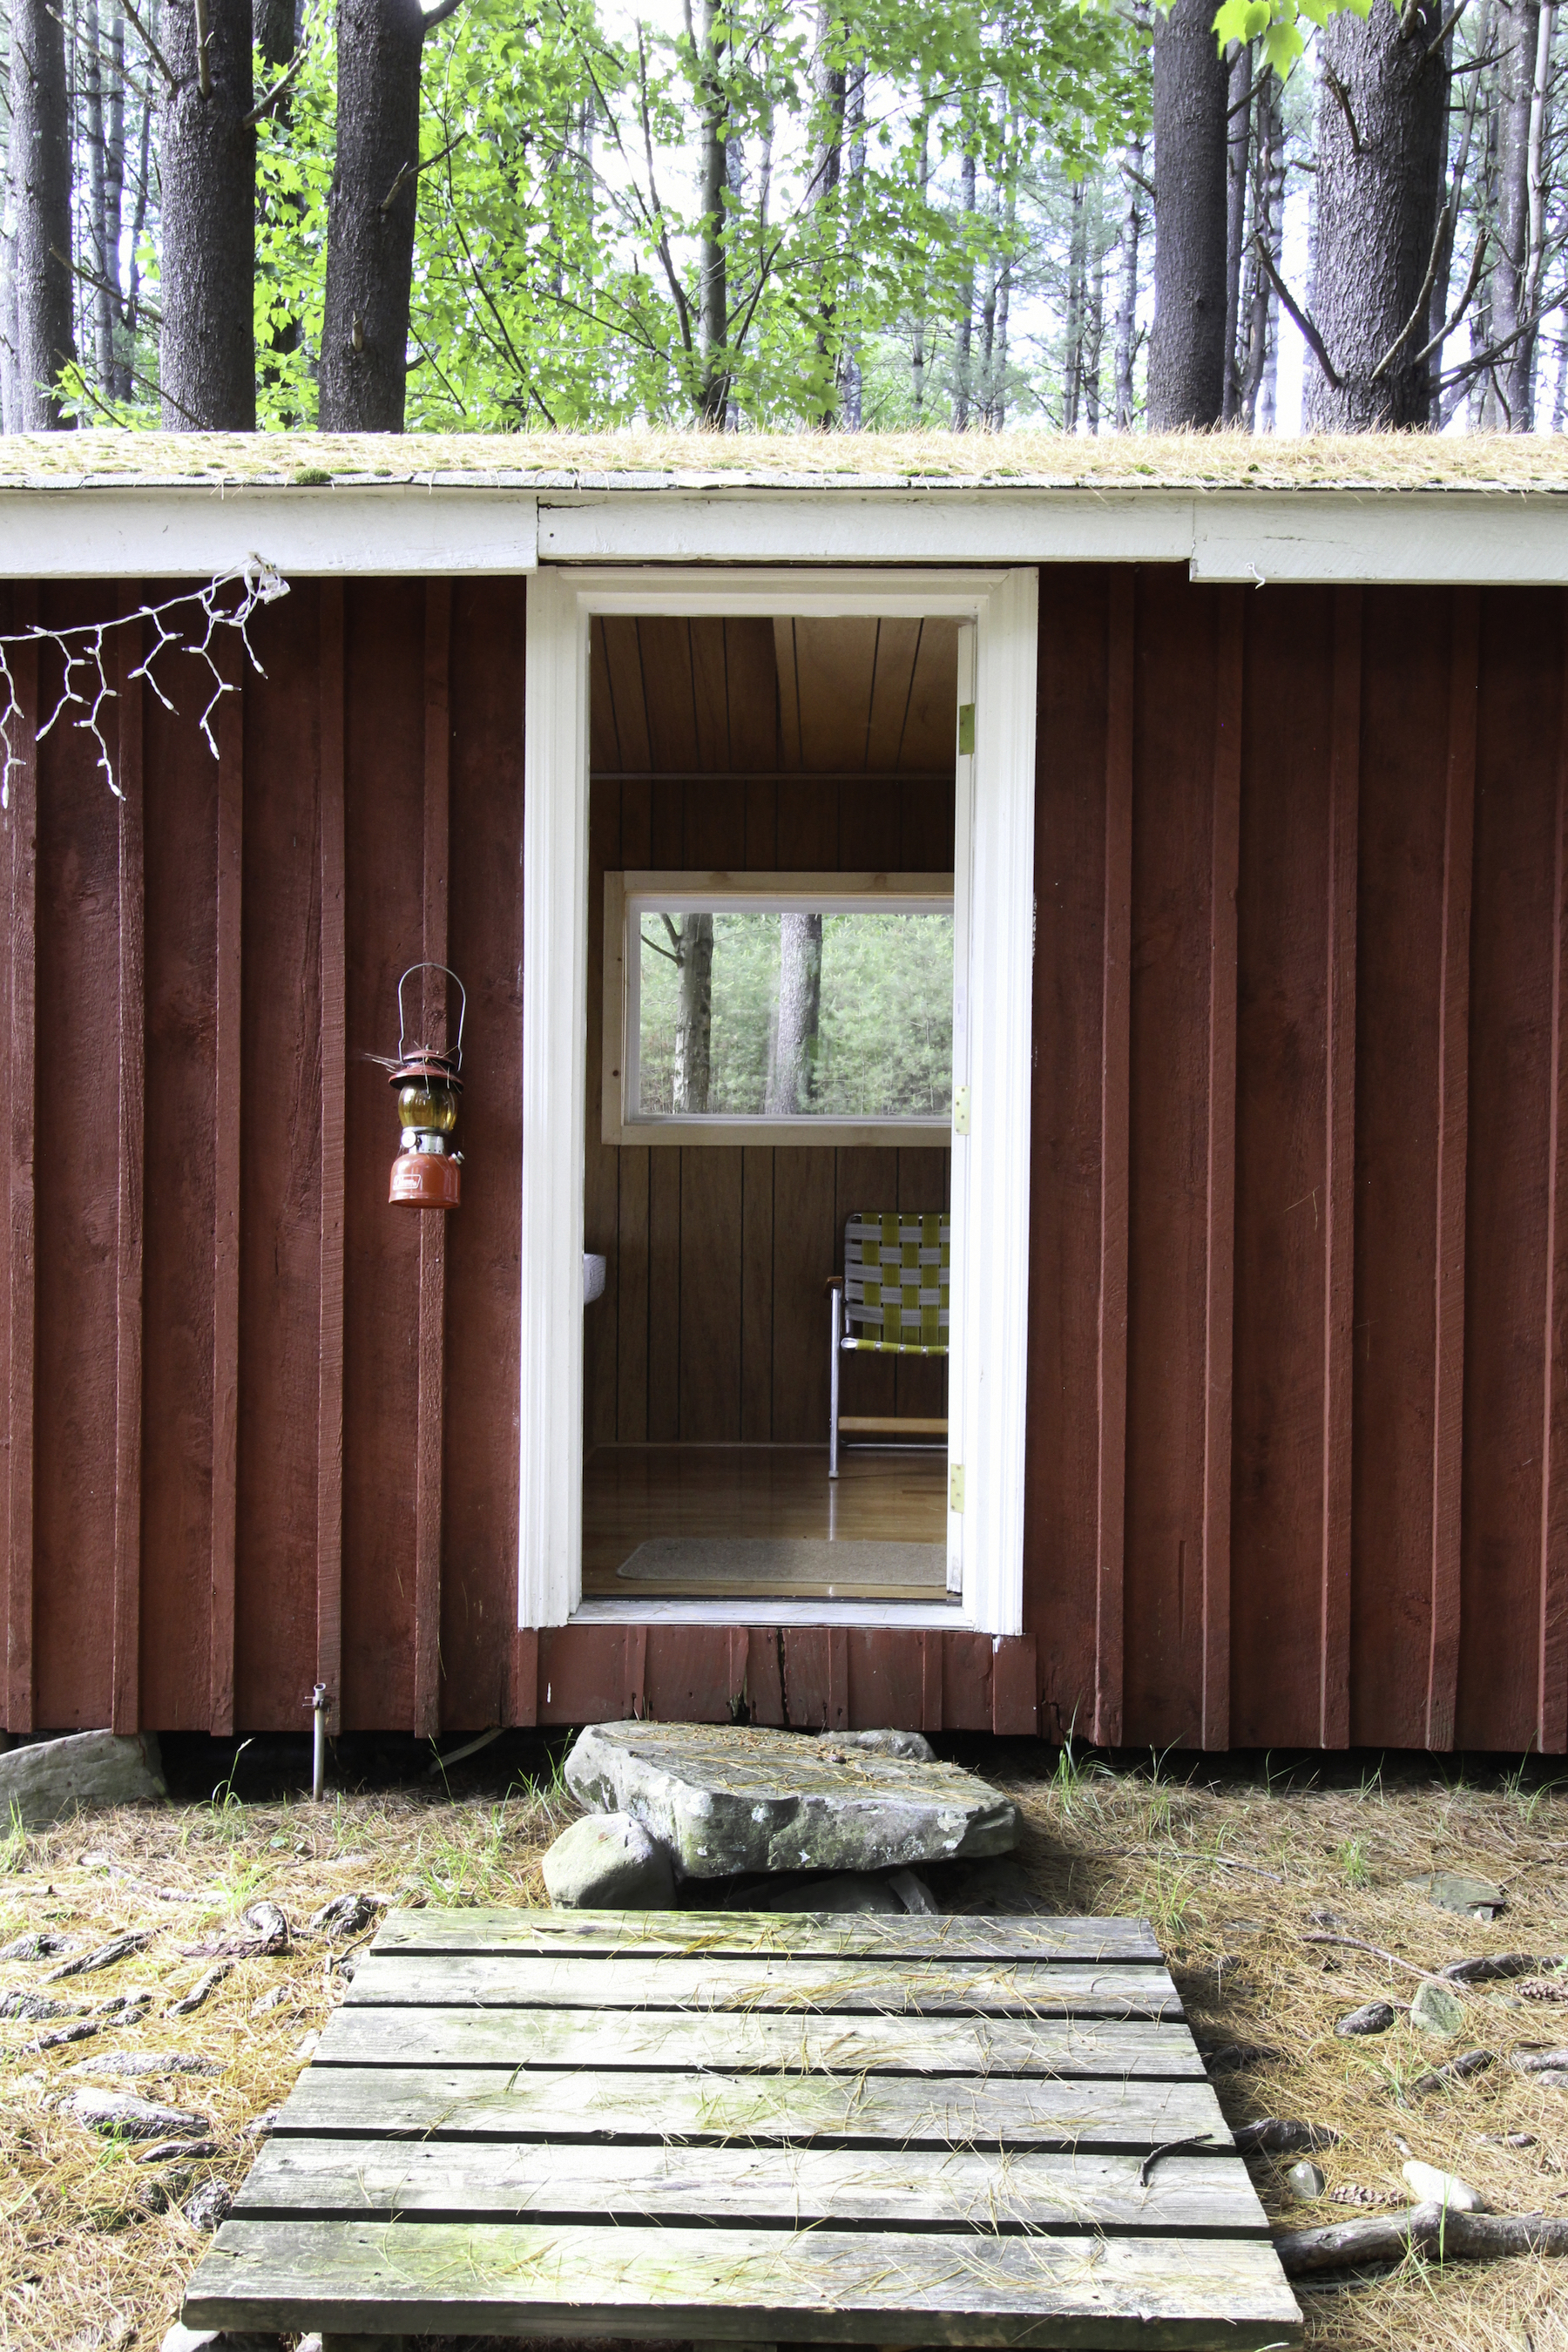 GROGKILL BUNKHOUSE EXTERIOR LOOKING IN.jpg